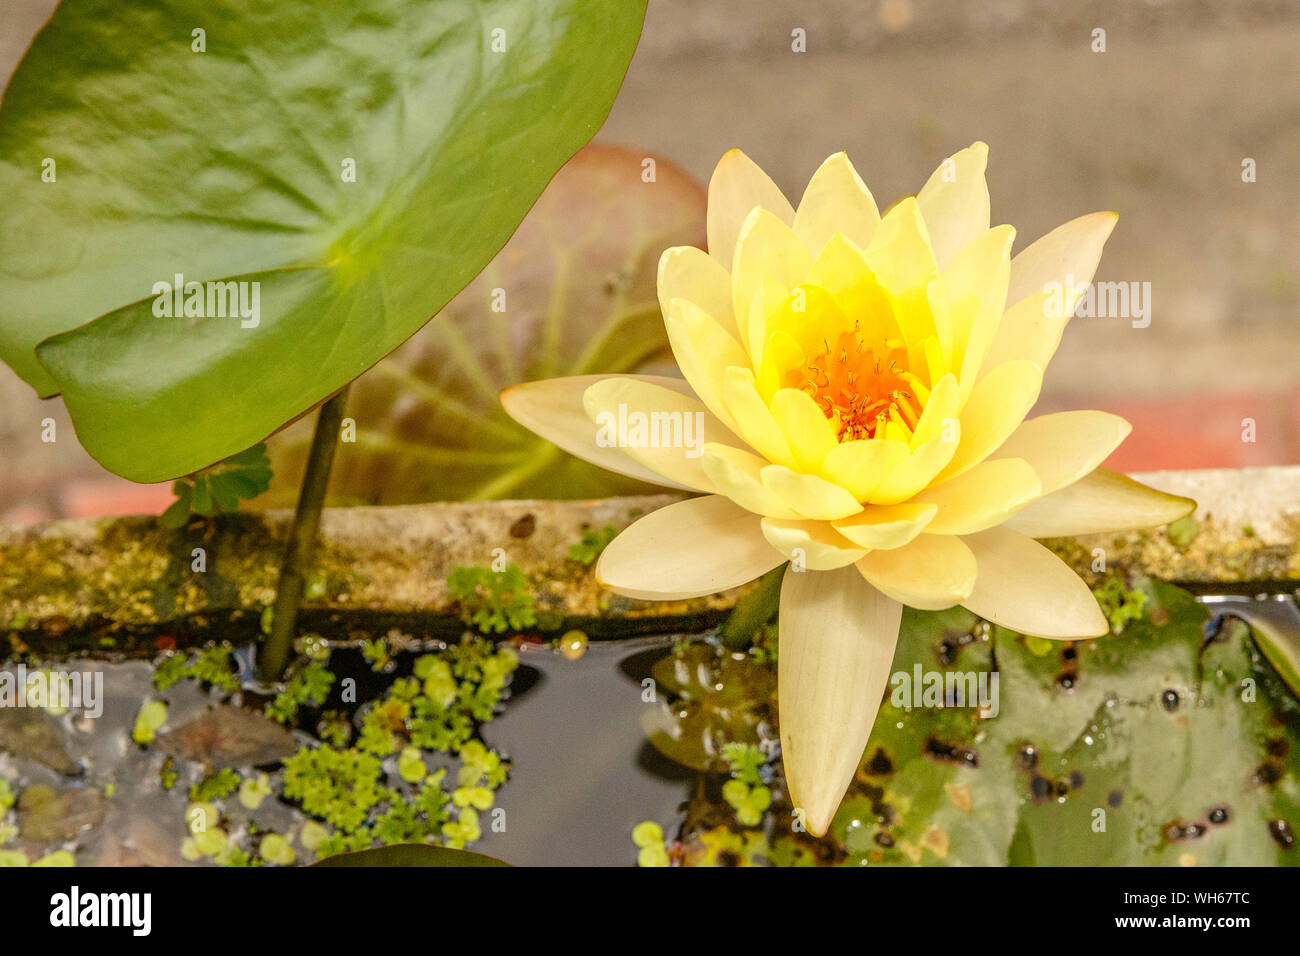 Blooming yellow Water Lilly in a pot on the streets of Bangkok. Thailand. Stock Photo